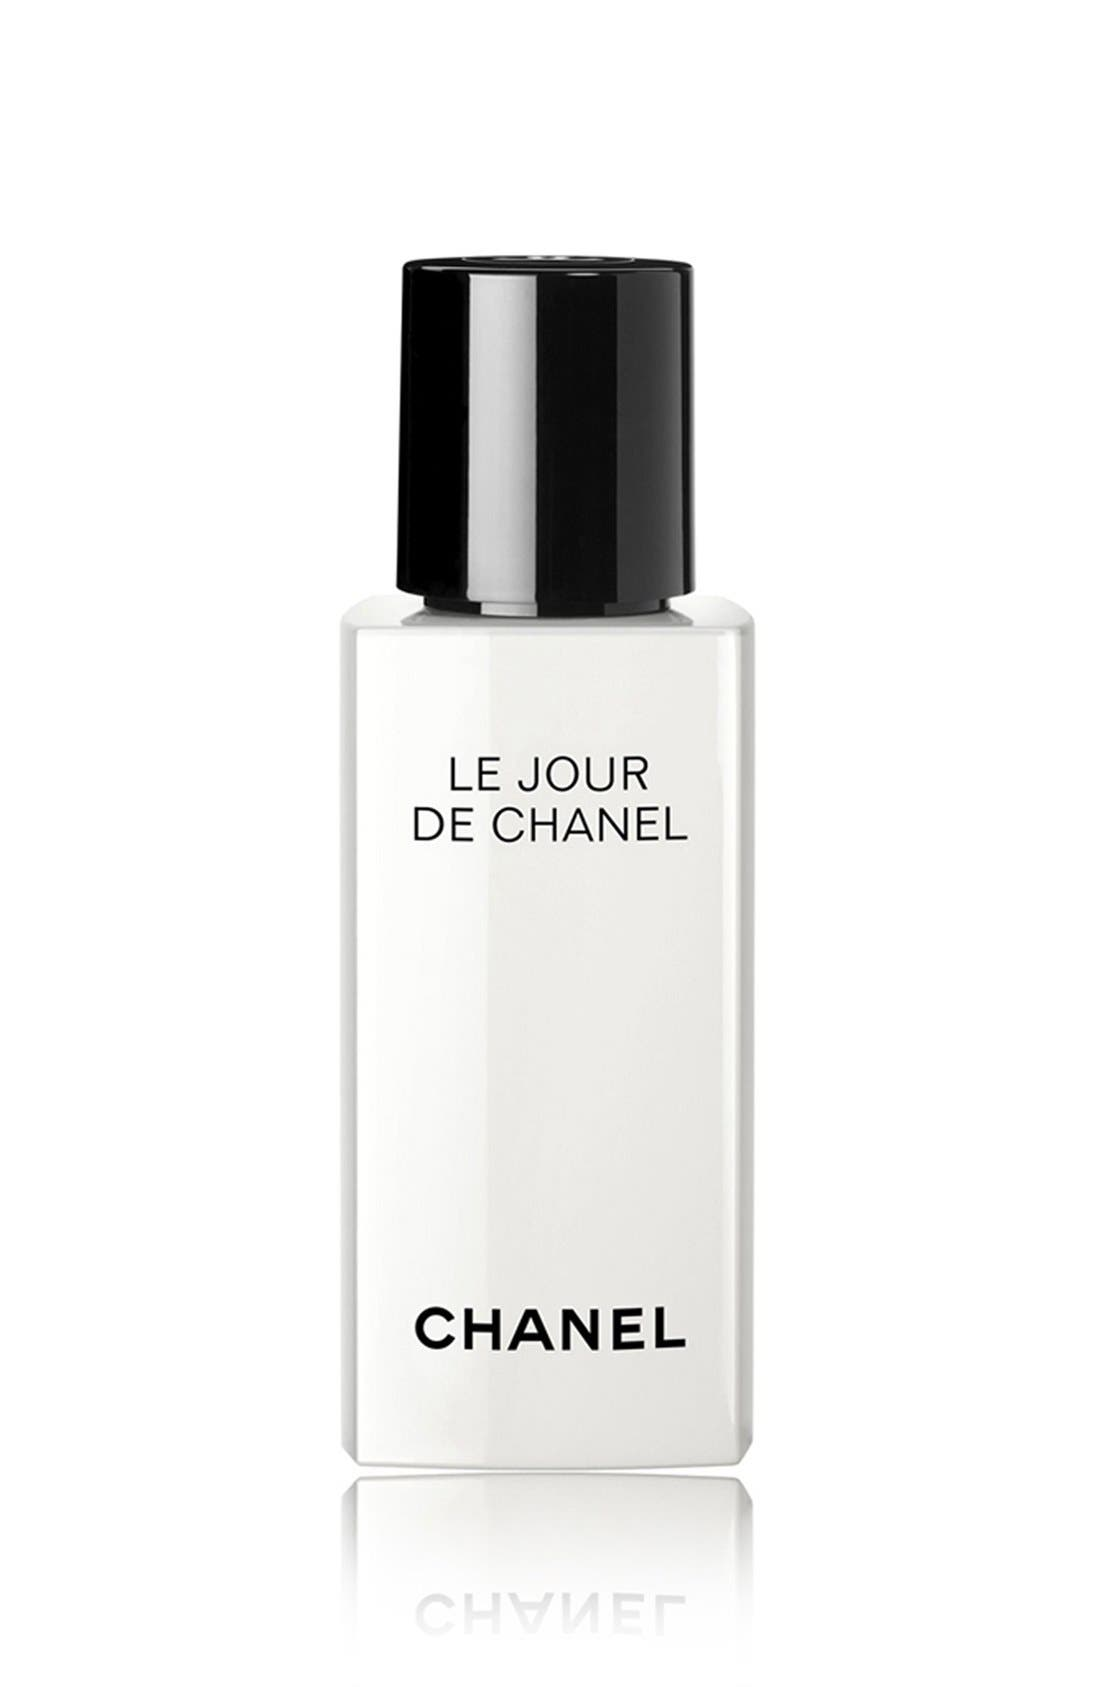 CHANEL LE JOUR DE CHANEL 